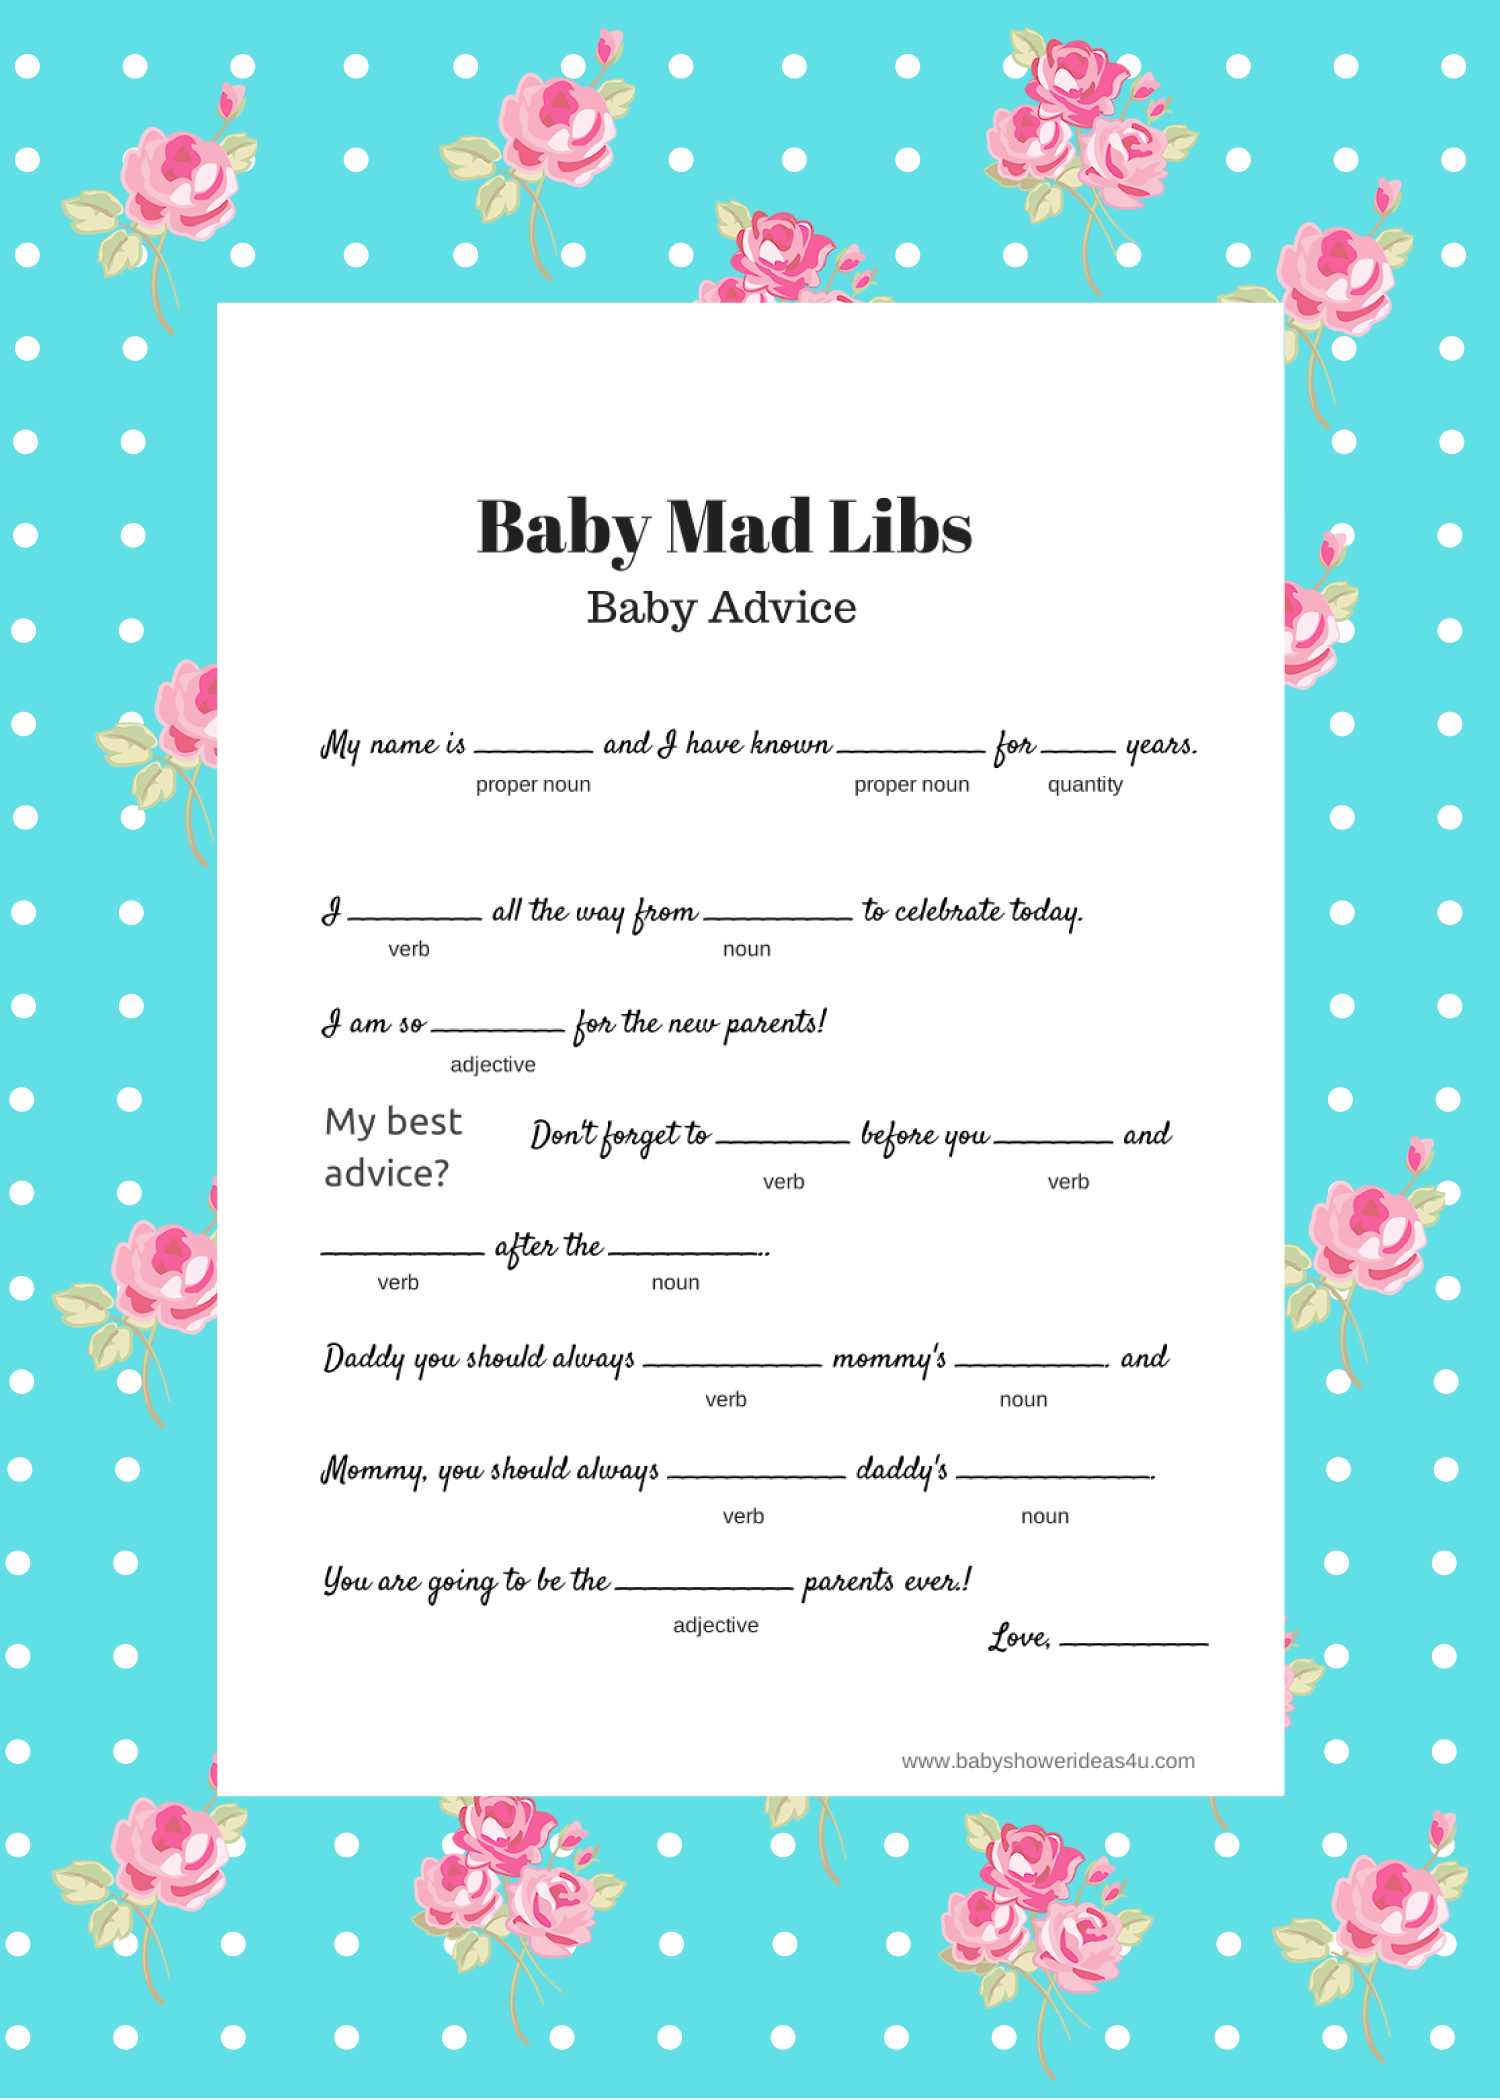 free baby mad libs game  baby advice  baby shower ideas  themes, Baby shower